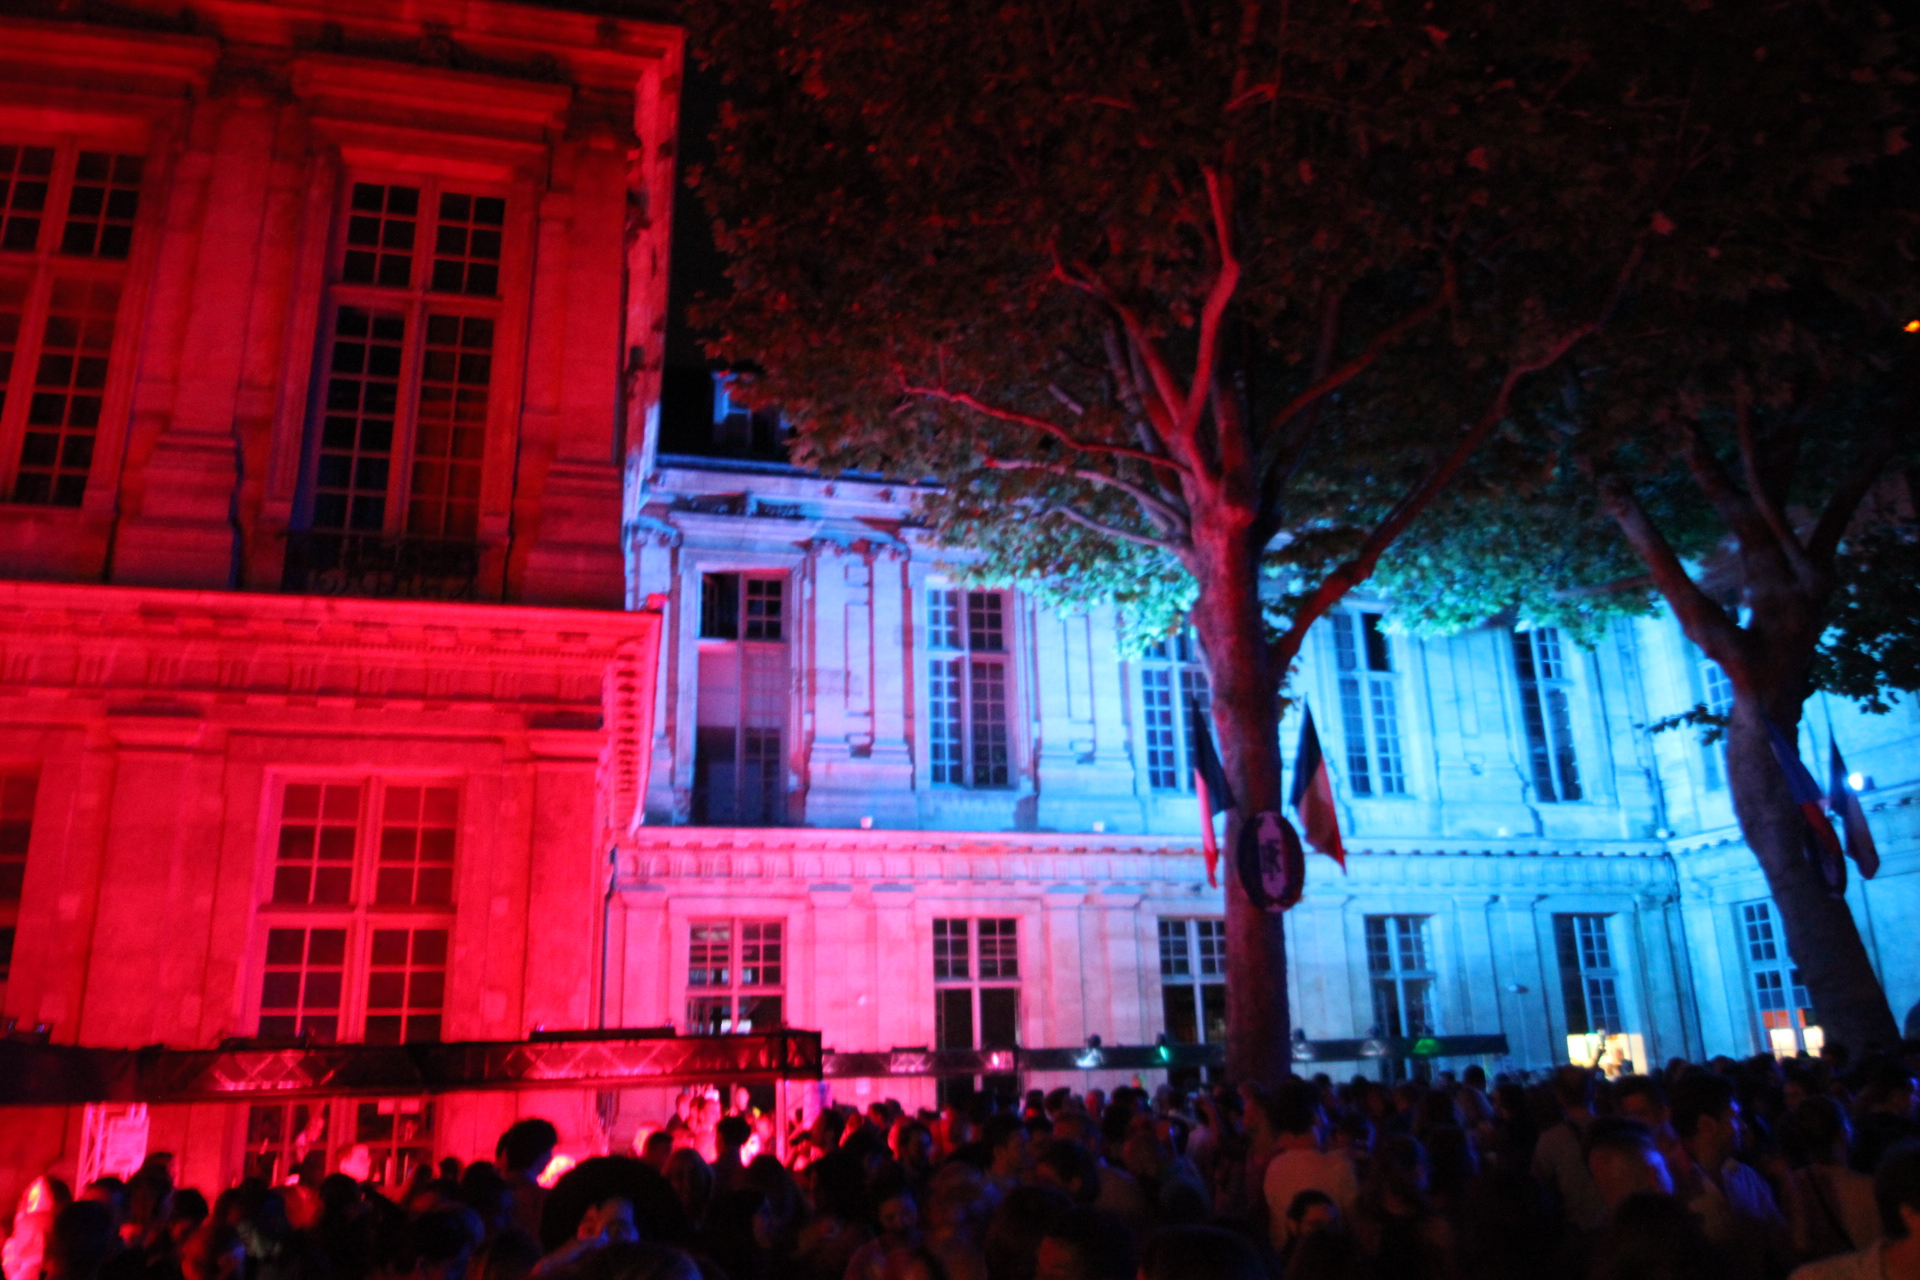 PARIS MARAIS.COM : For Bastille Day, Welcome to Paris' Biggest Open Dance Floor !